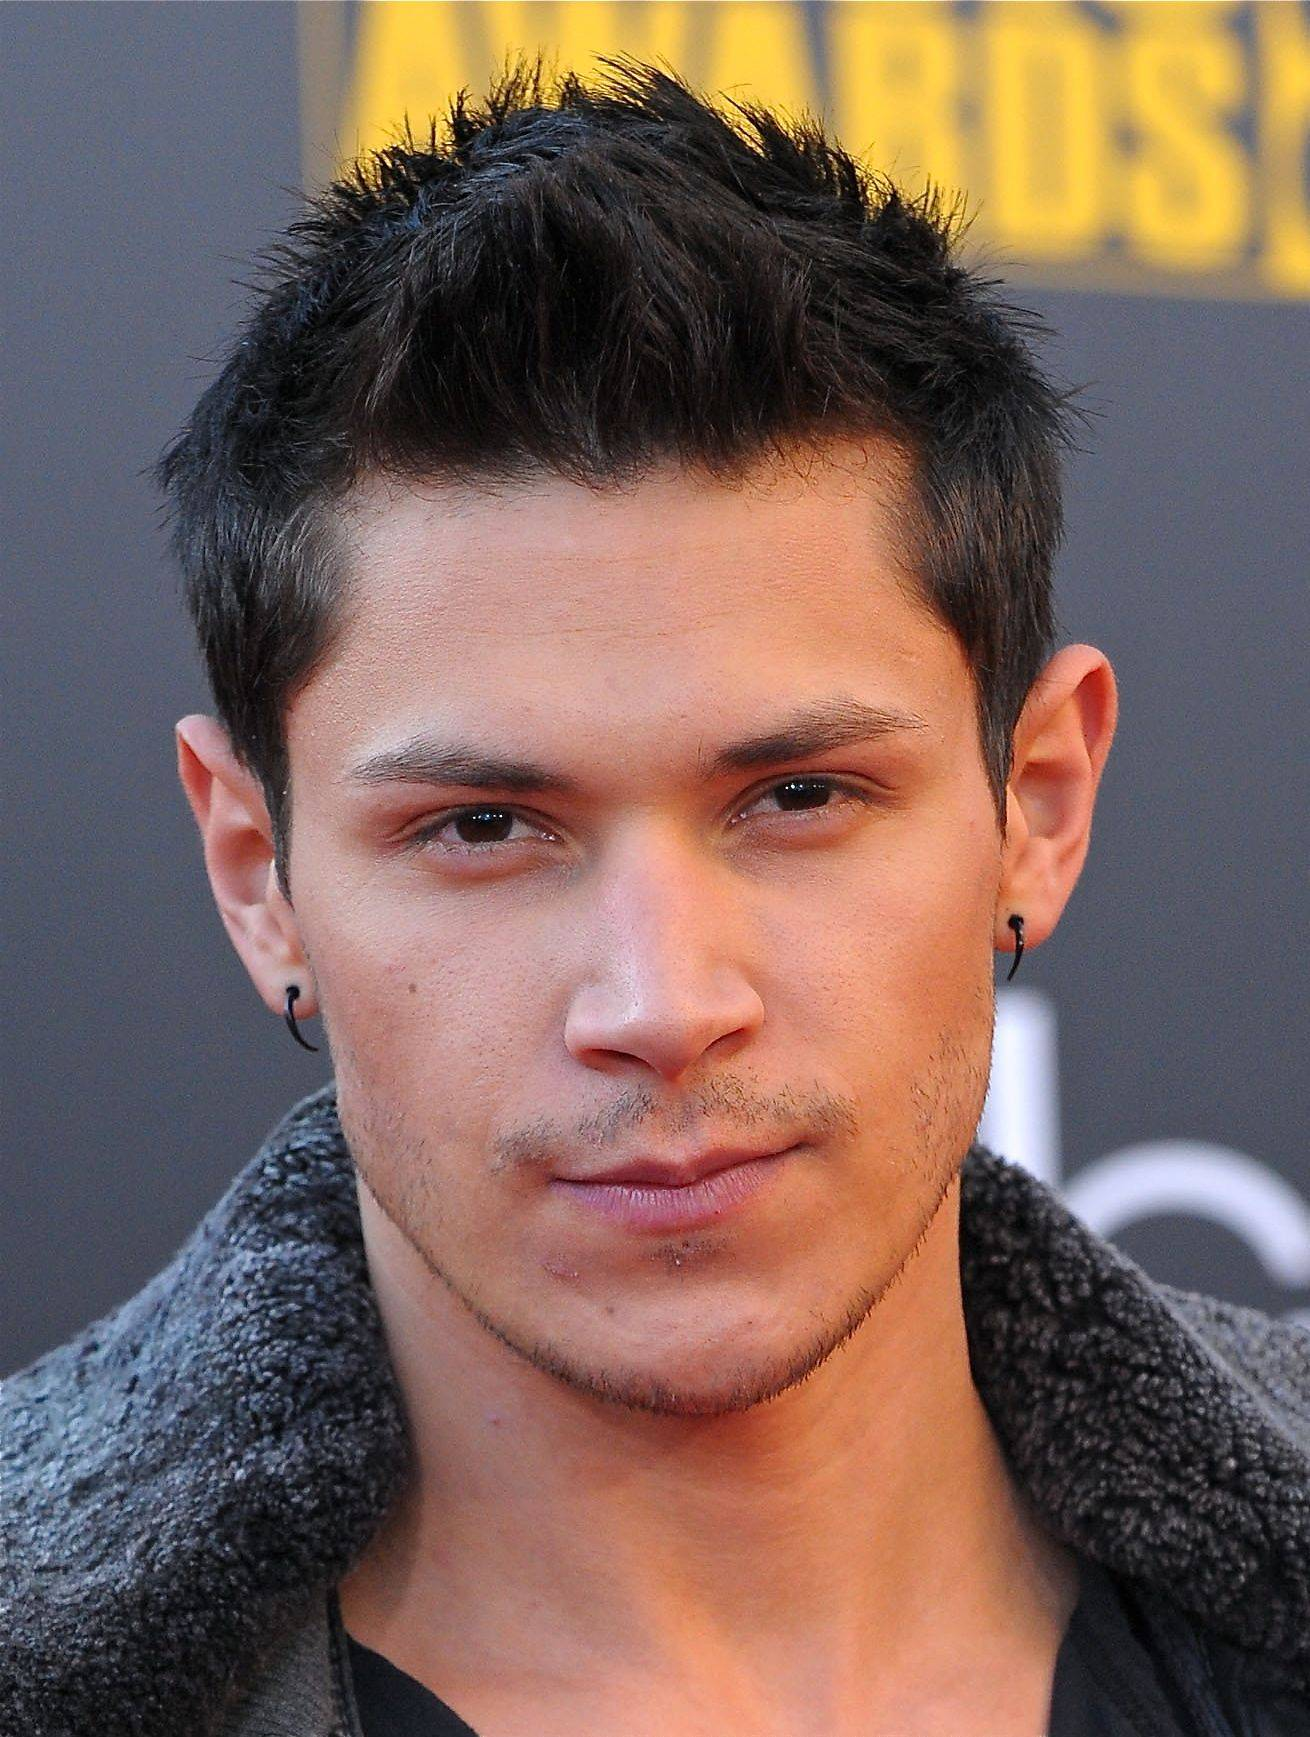 Mens hairstyles 2013 the best  LosHairoscom